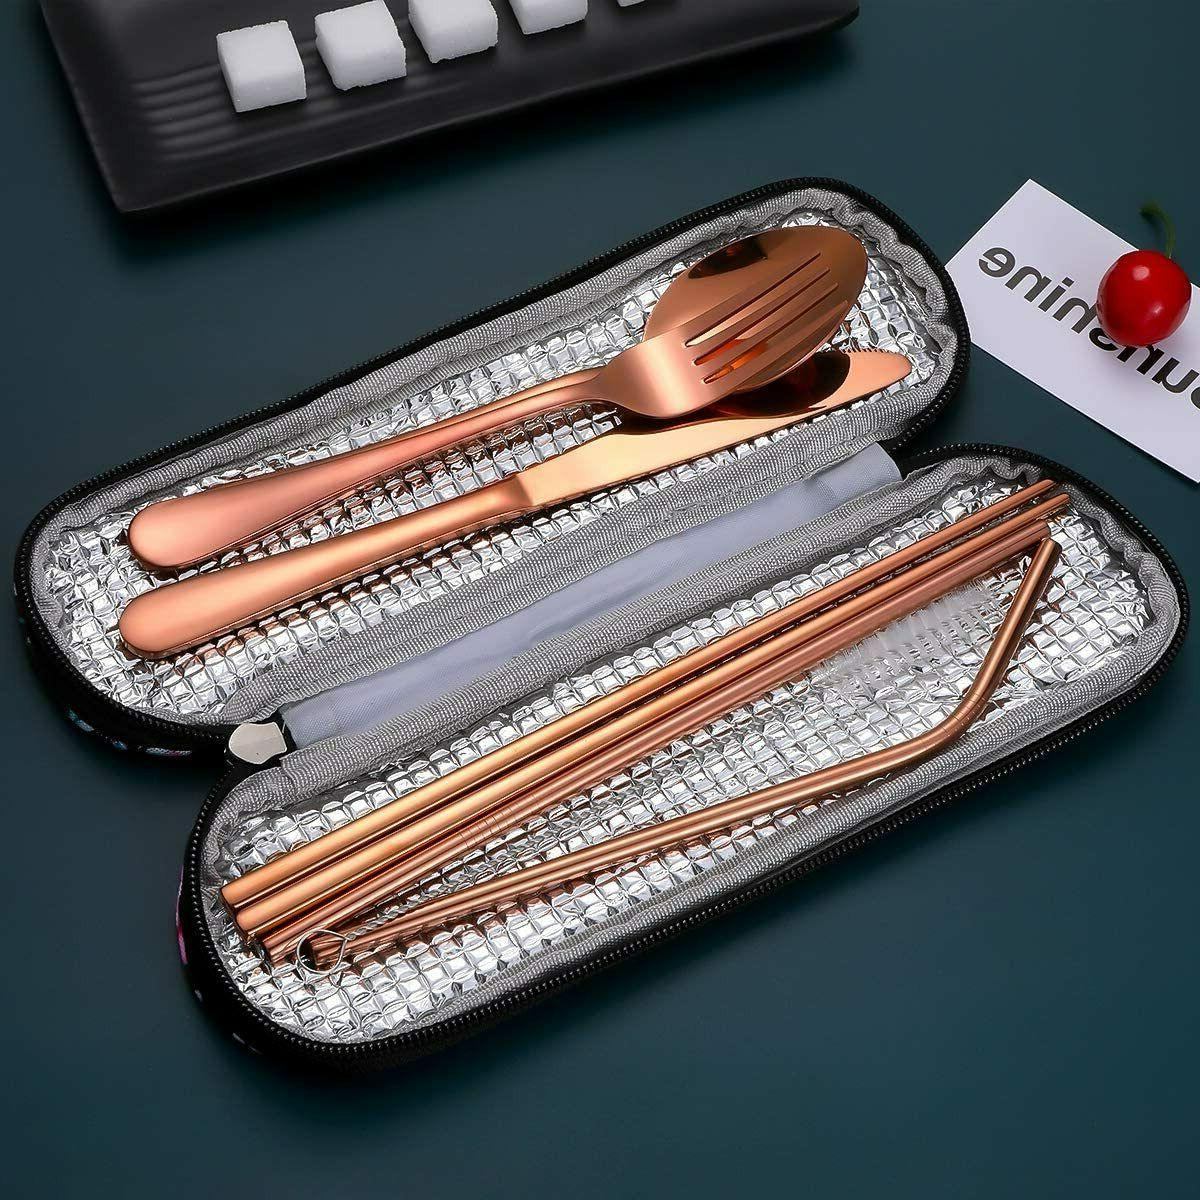 Travel Utensils,Reusable Silverware Set To Set with Waterp